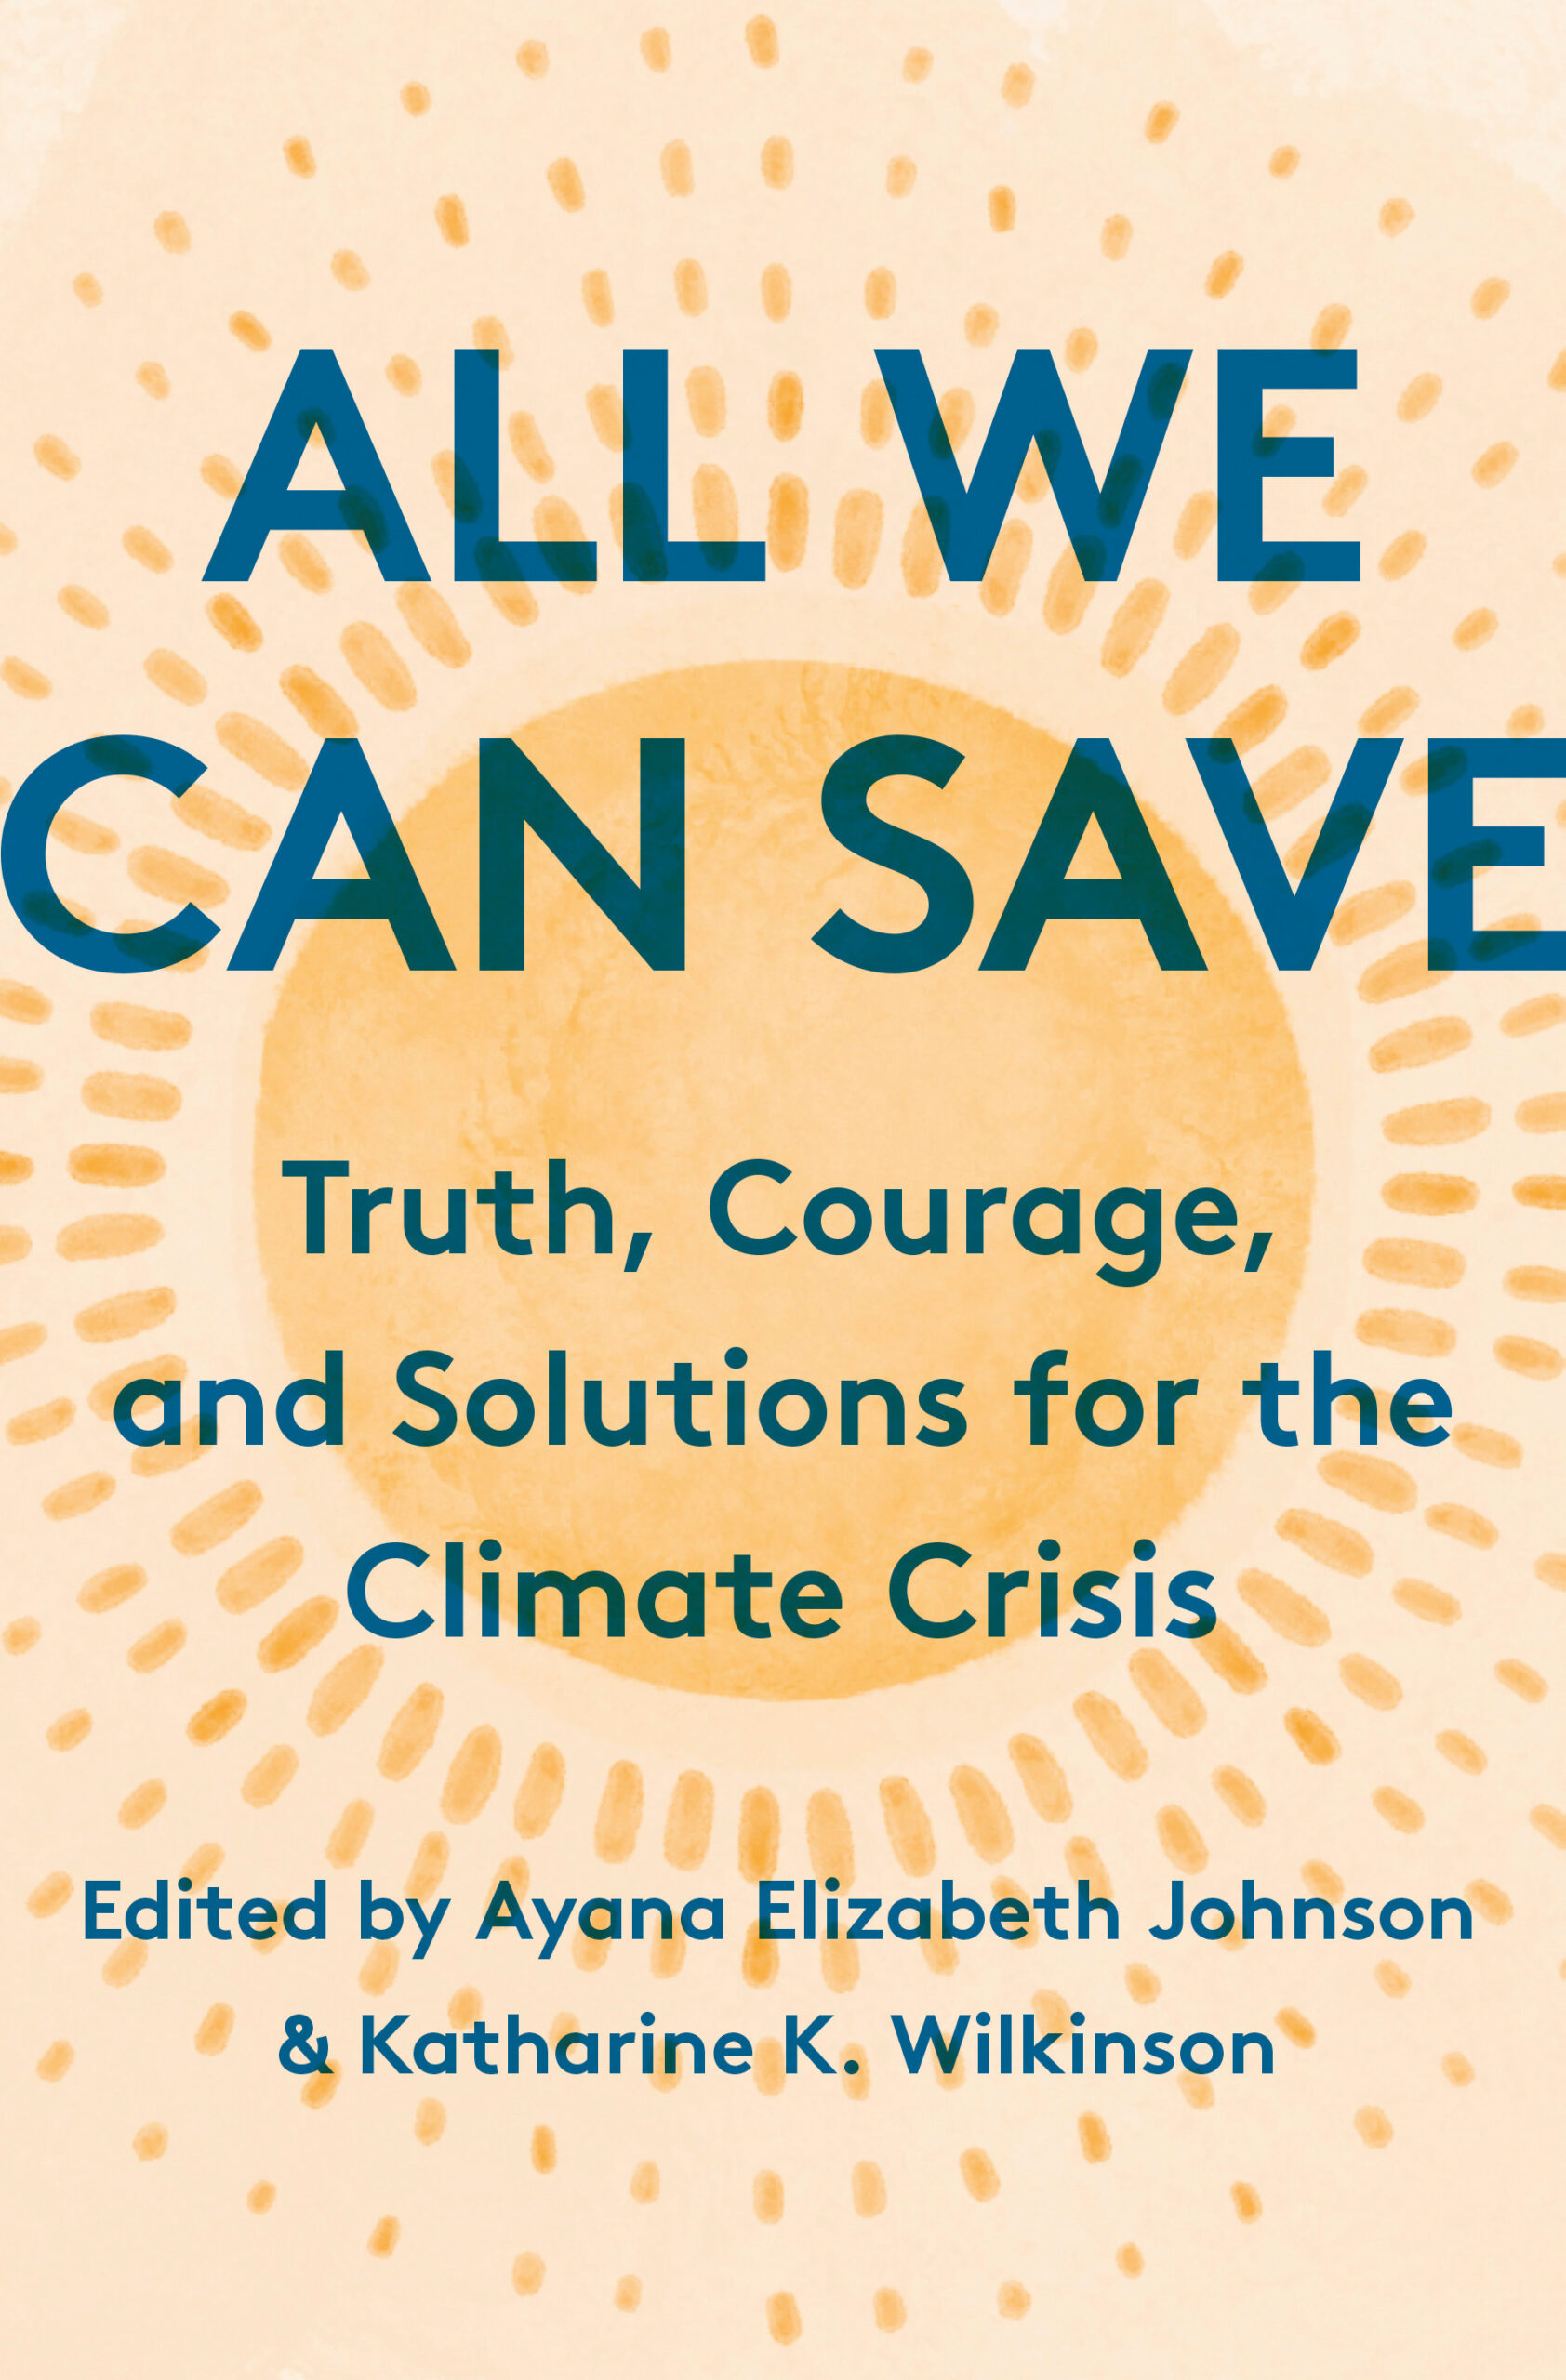 All We Can Save: Truth, Courage, and Solutions for the Climate Crisis by Ayana Elizabeth Johnson, Katharine K. Wilkinson